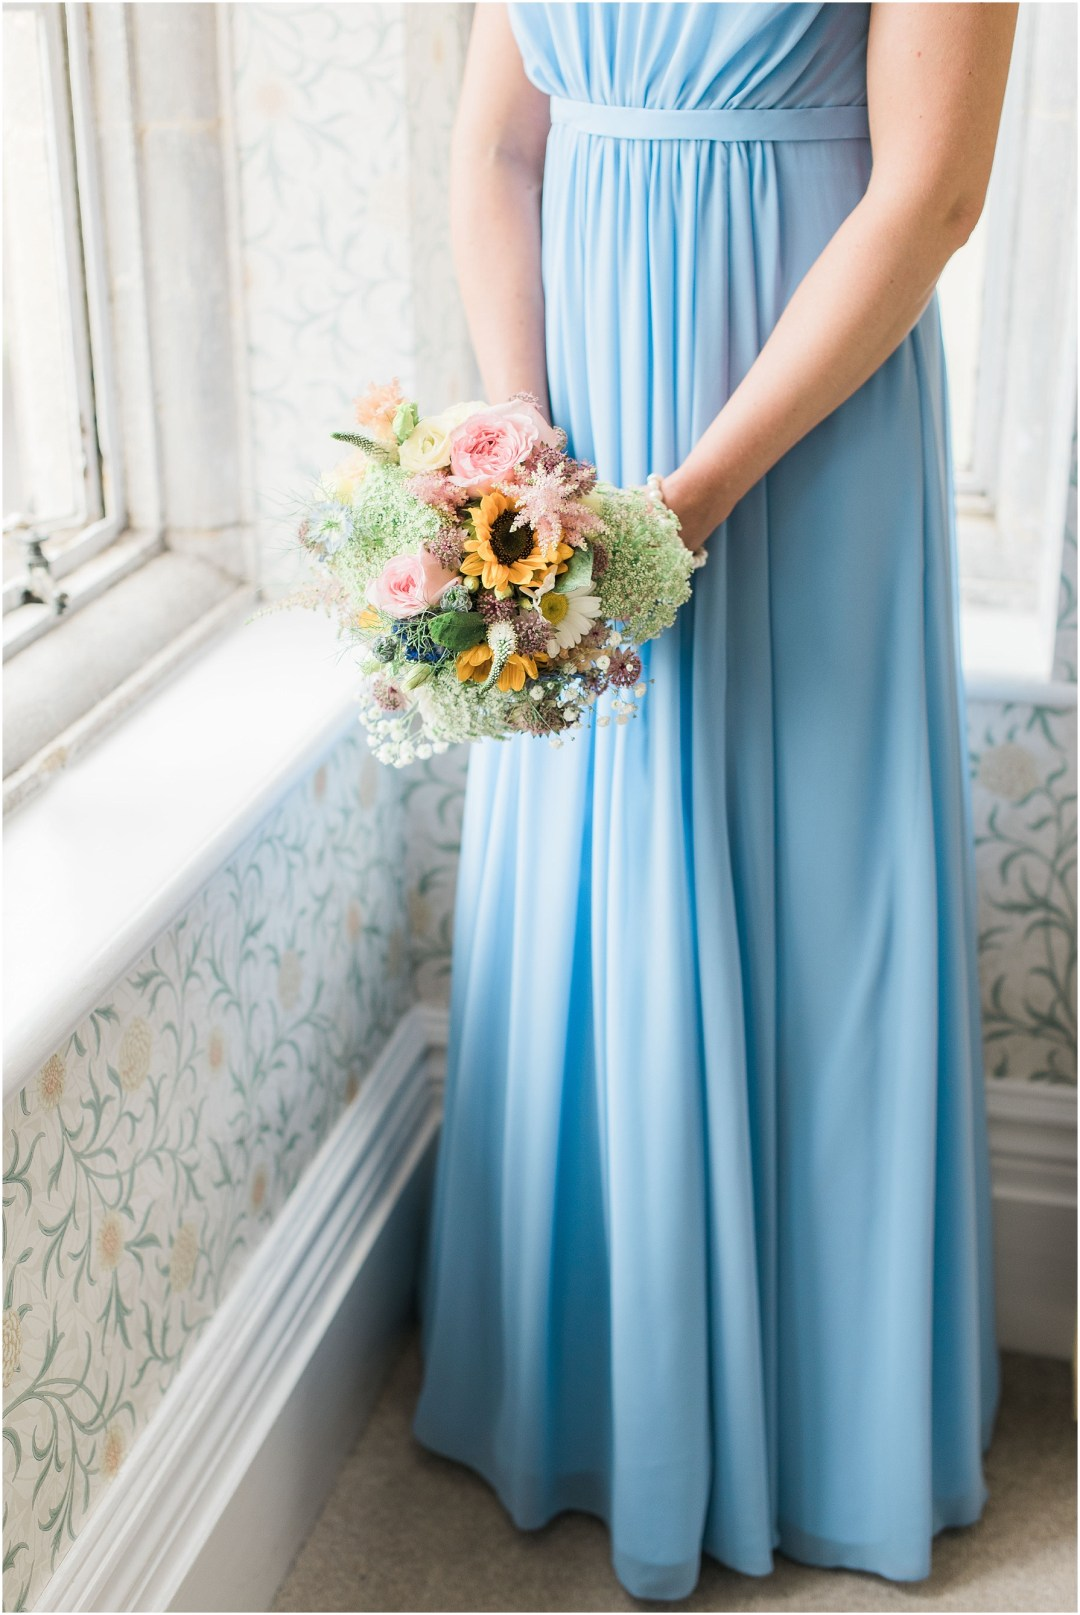 bridesmaid wearing a pastel blue dress and holding a floral bouquet